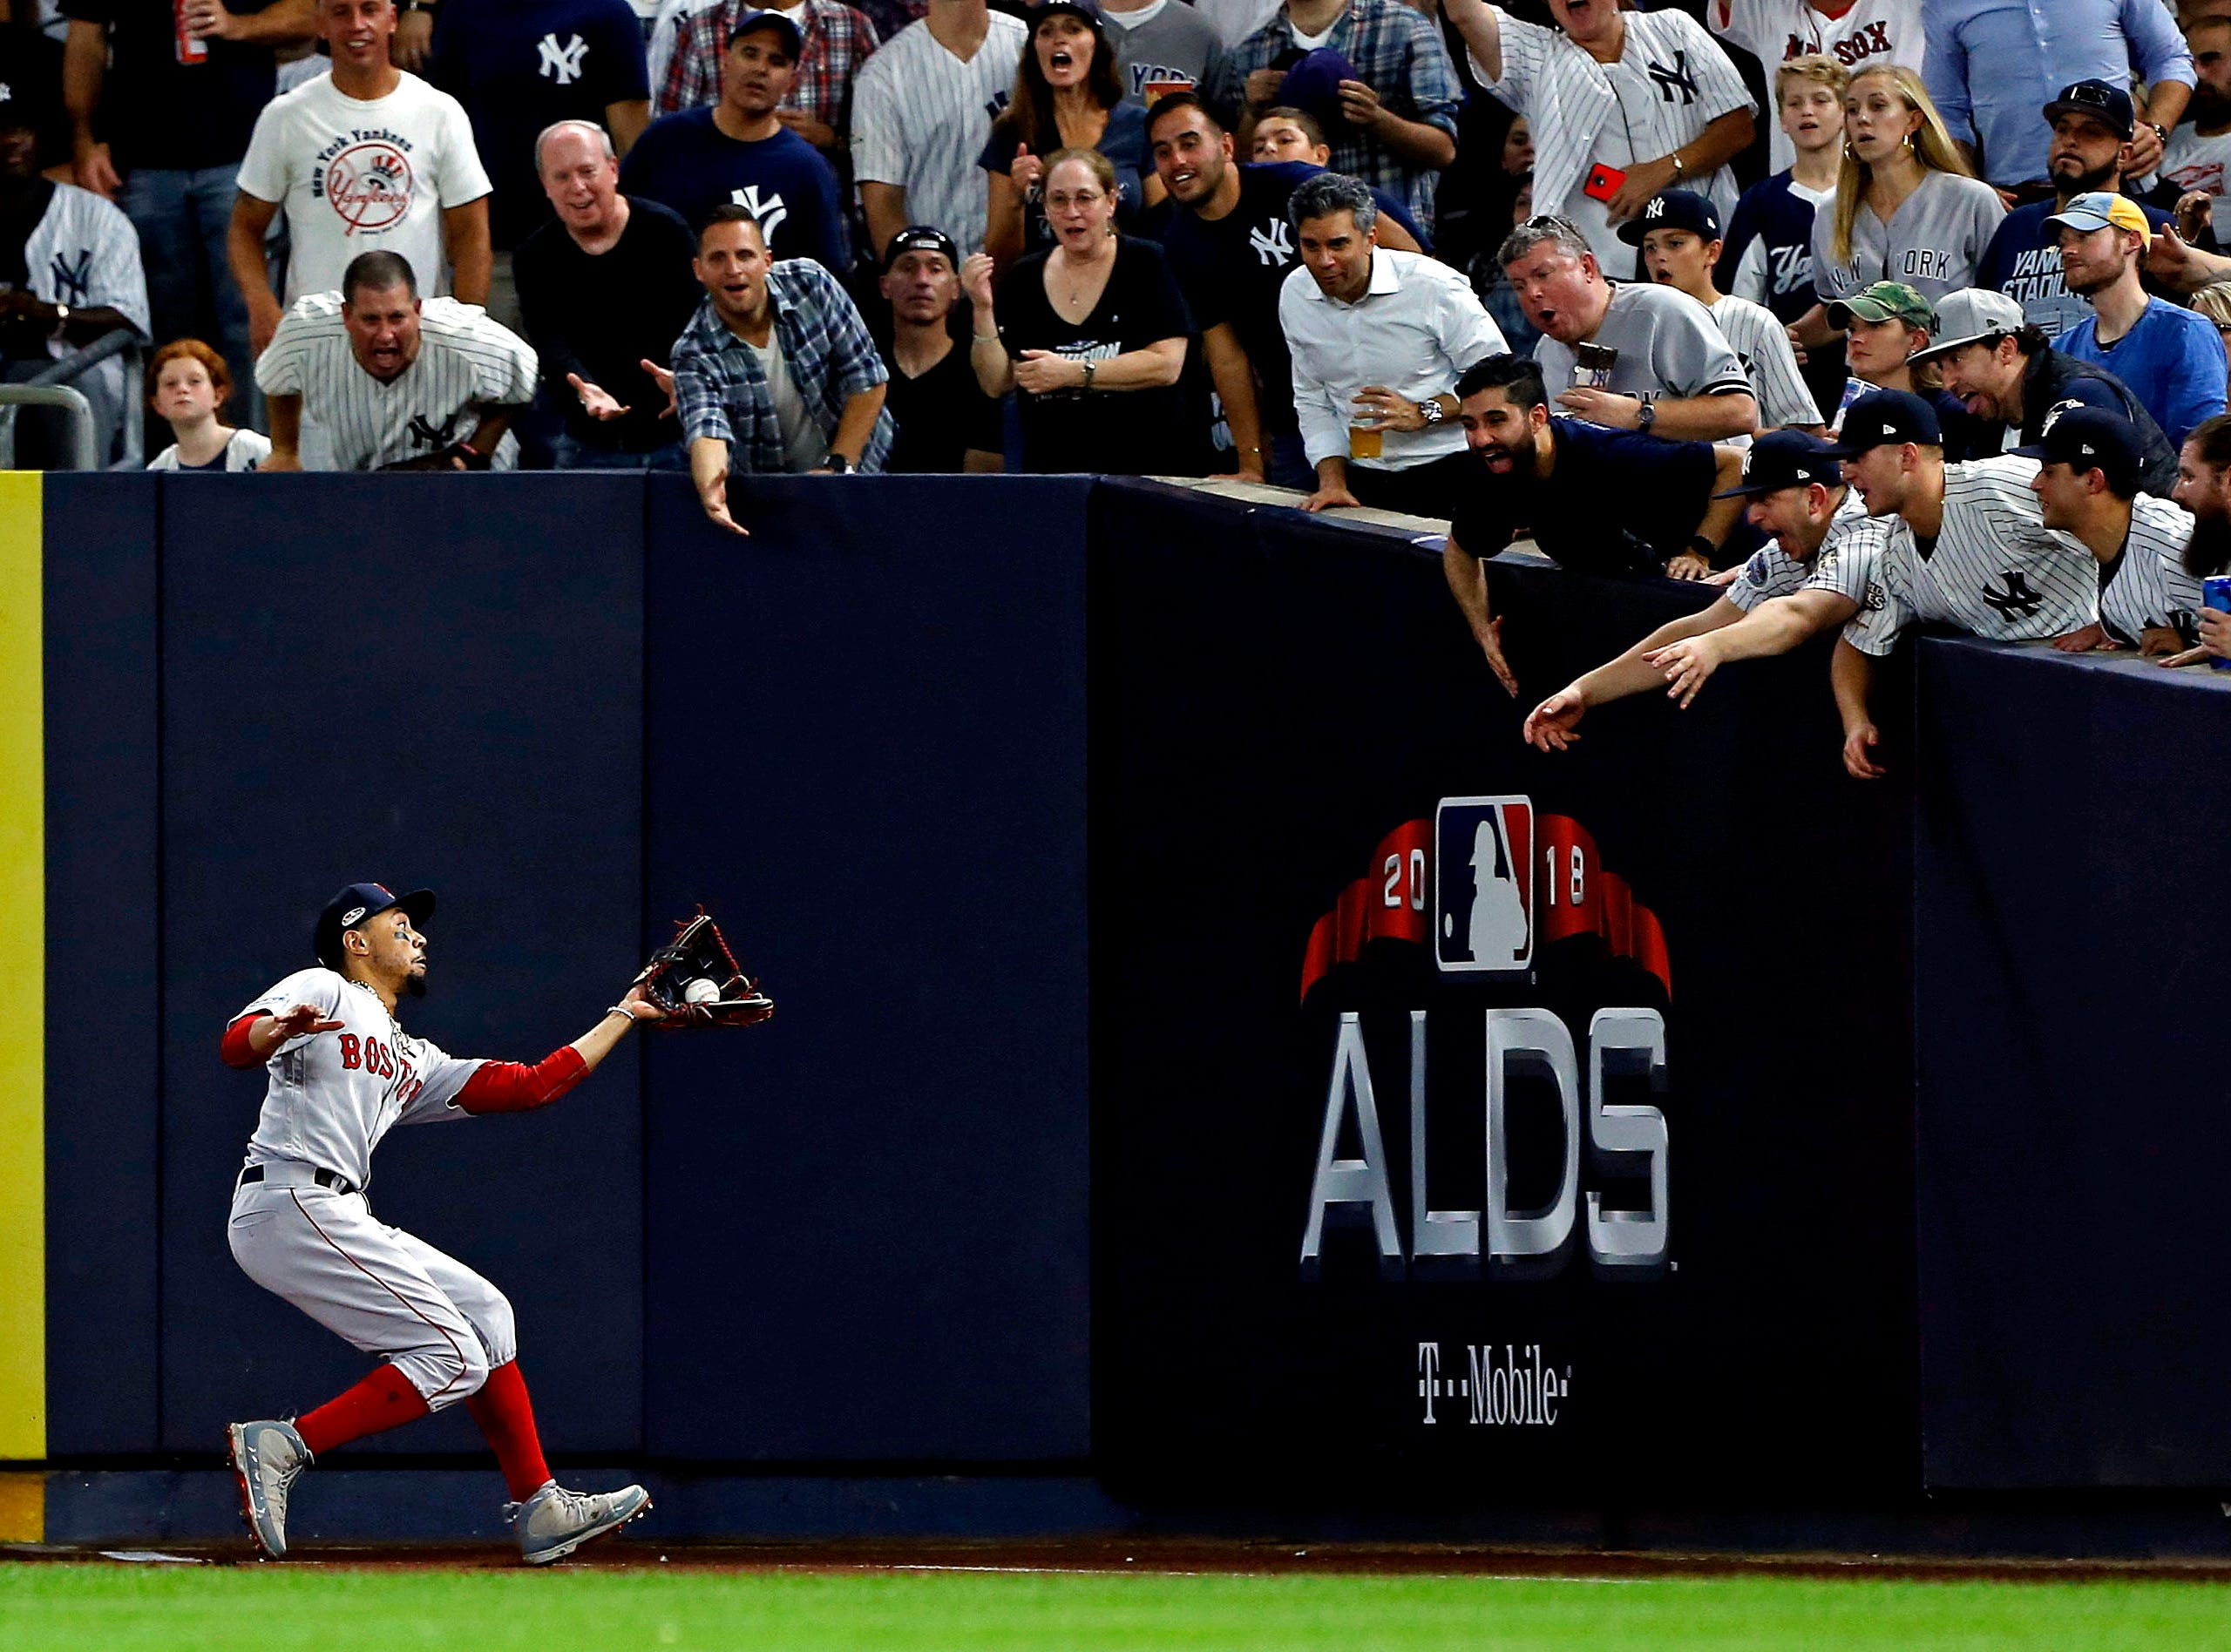 Oct. 9: Boston Red Sox right fielder Mookie Betts (50) catches a fly ball during the seventh inning against the New York Yankees in Game 4 of the ALDS.